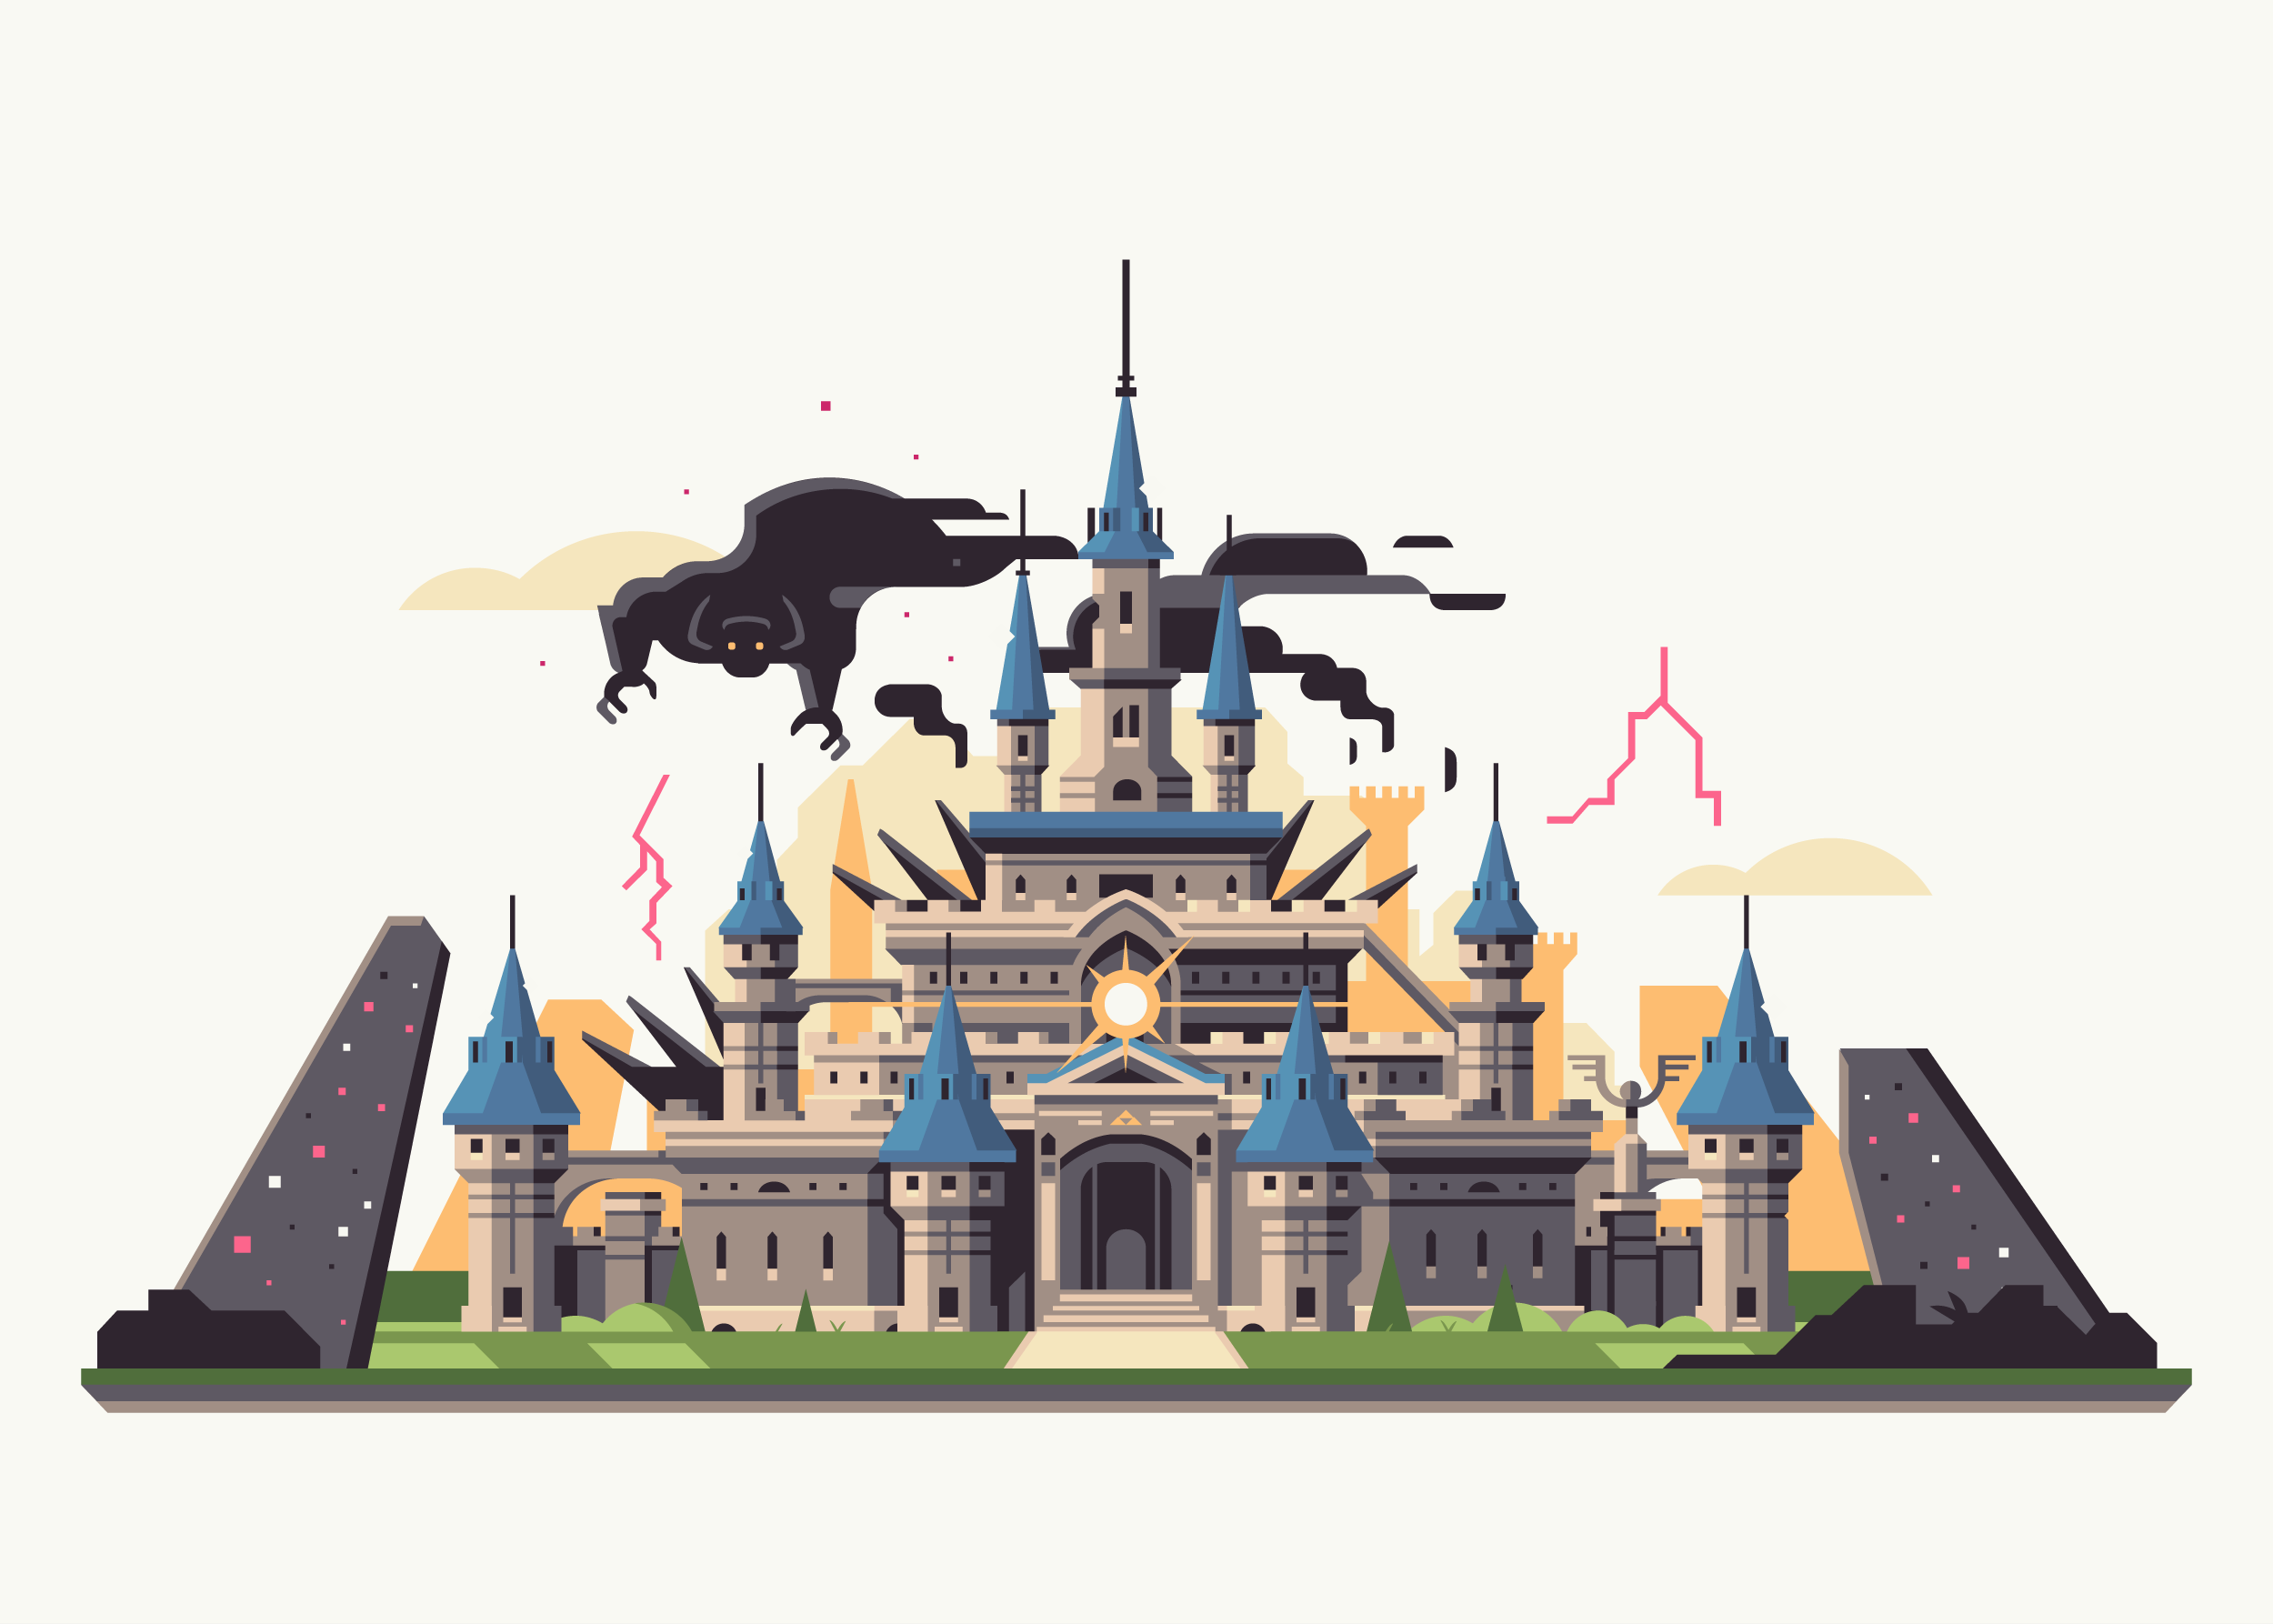 Wild series by Matt Anderson. Inspired by Zelda Breath of the Wild. Corrupted Castle / Hyrule Castle / Calamity Ganon.